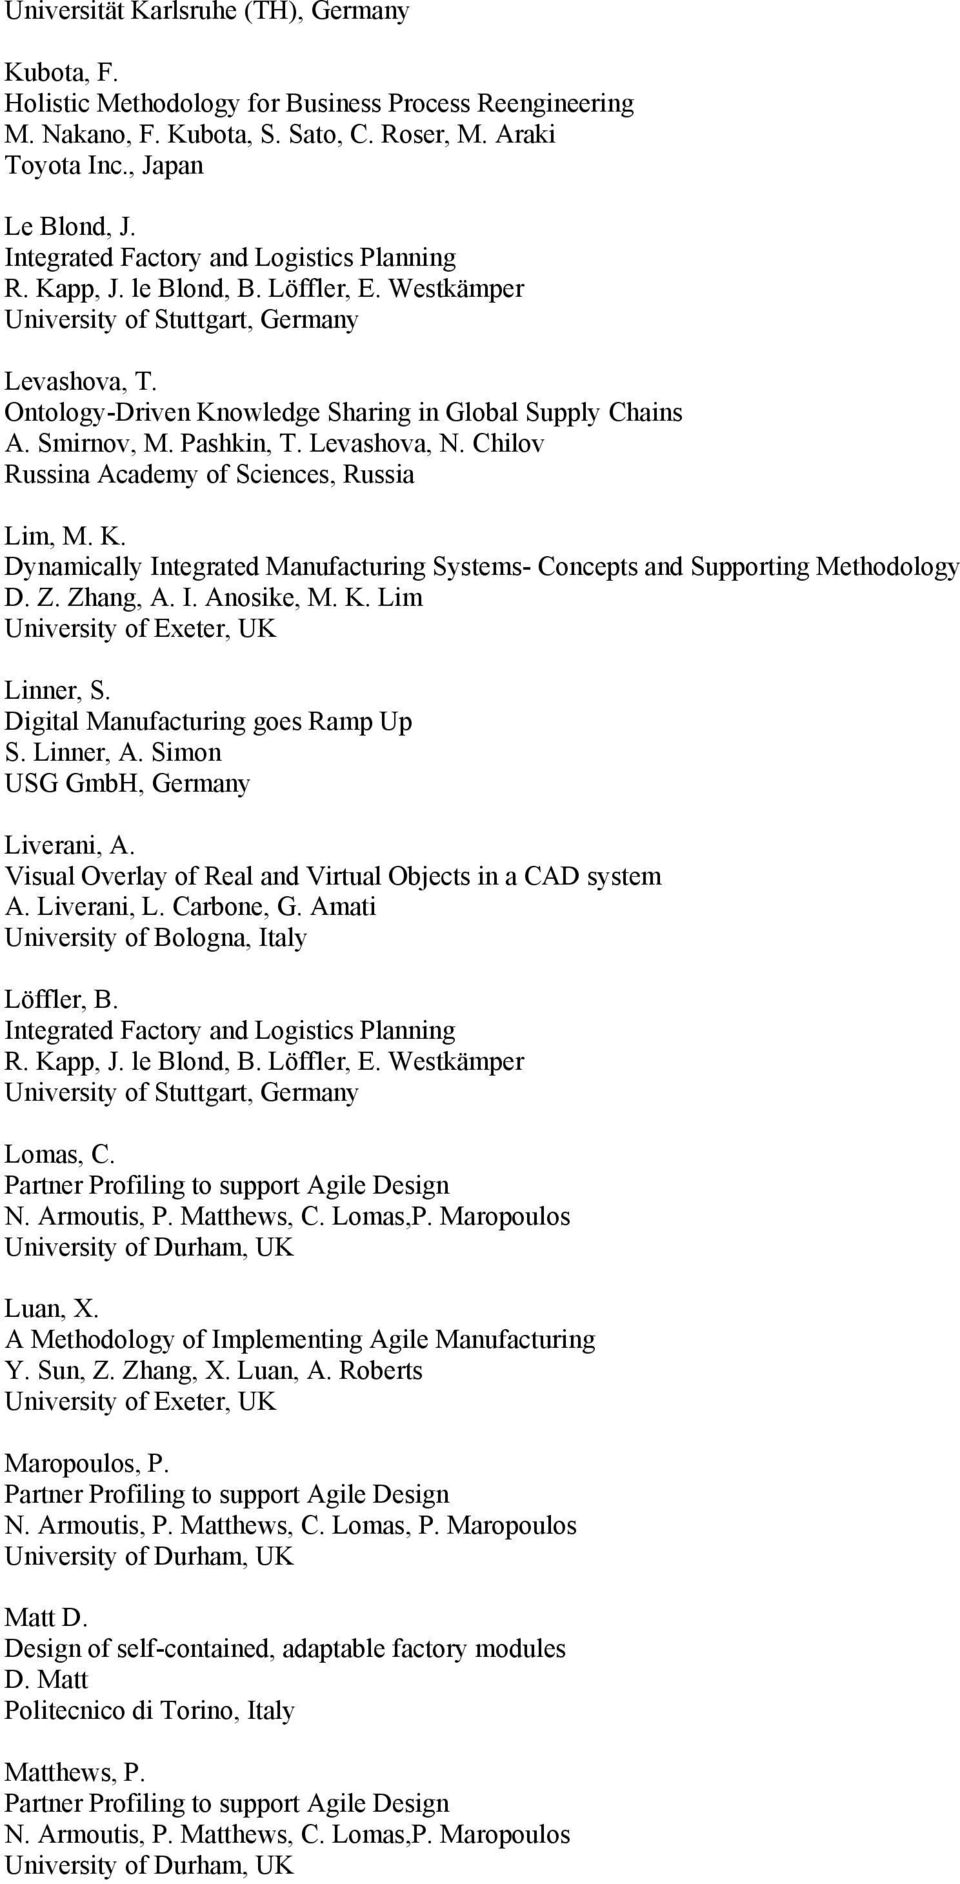 Smirnov, M. Pashkin, T. Levashova, N. Chilov Russina Academy of Sciences, Russia Lim, M. K. Dynamically Integrated Manufacturing Systems- Concepts and Supporting Methodology D. Z. Zhang, A. I. Anosike, M.